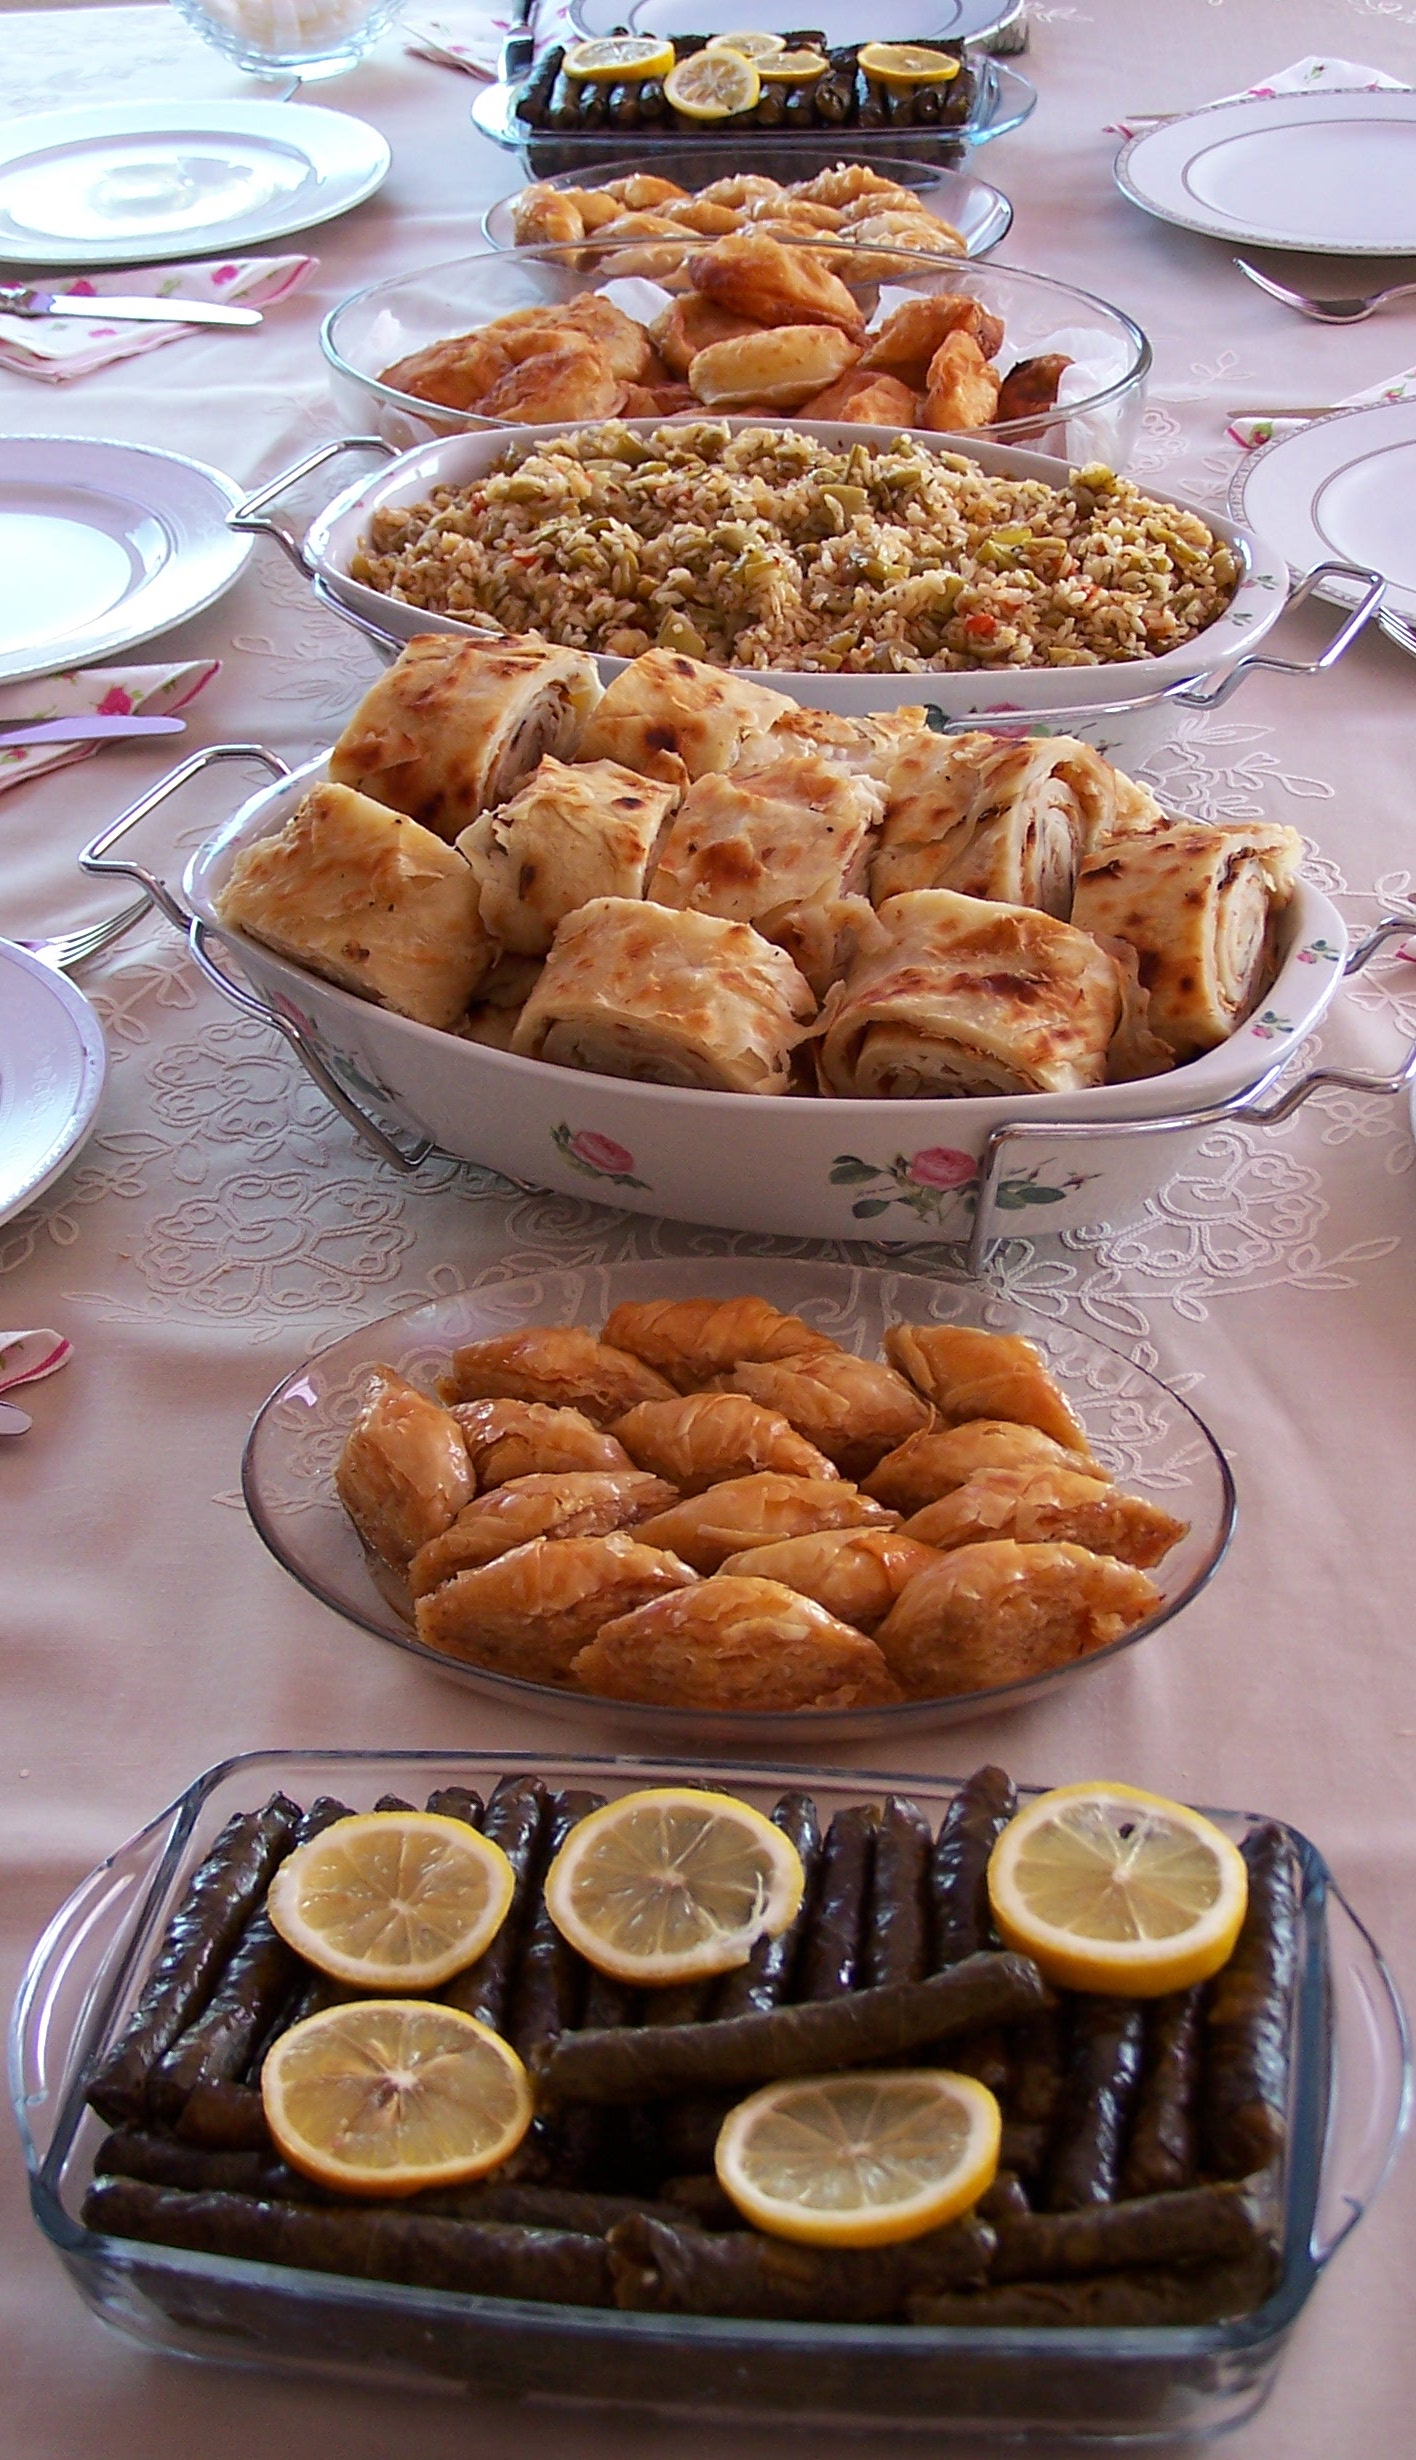 File food from turkey cropped jpg wikimedia commons for Cuisine wikipedia